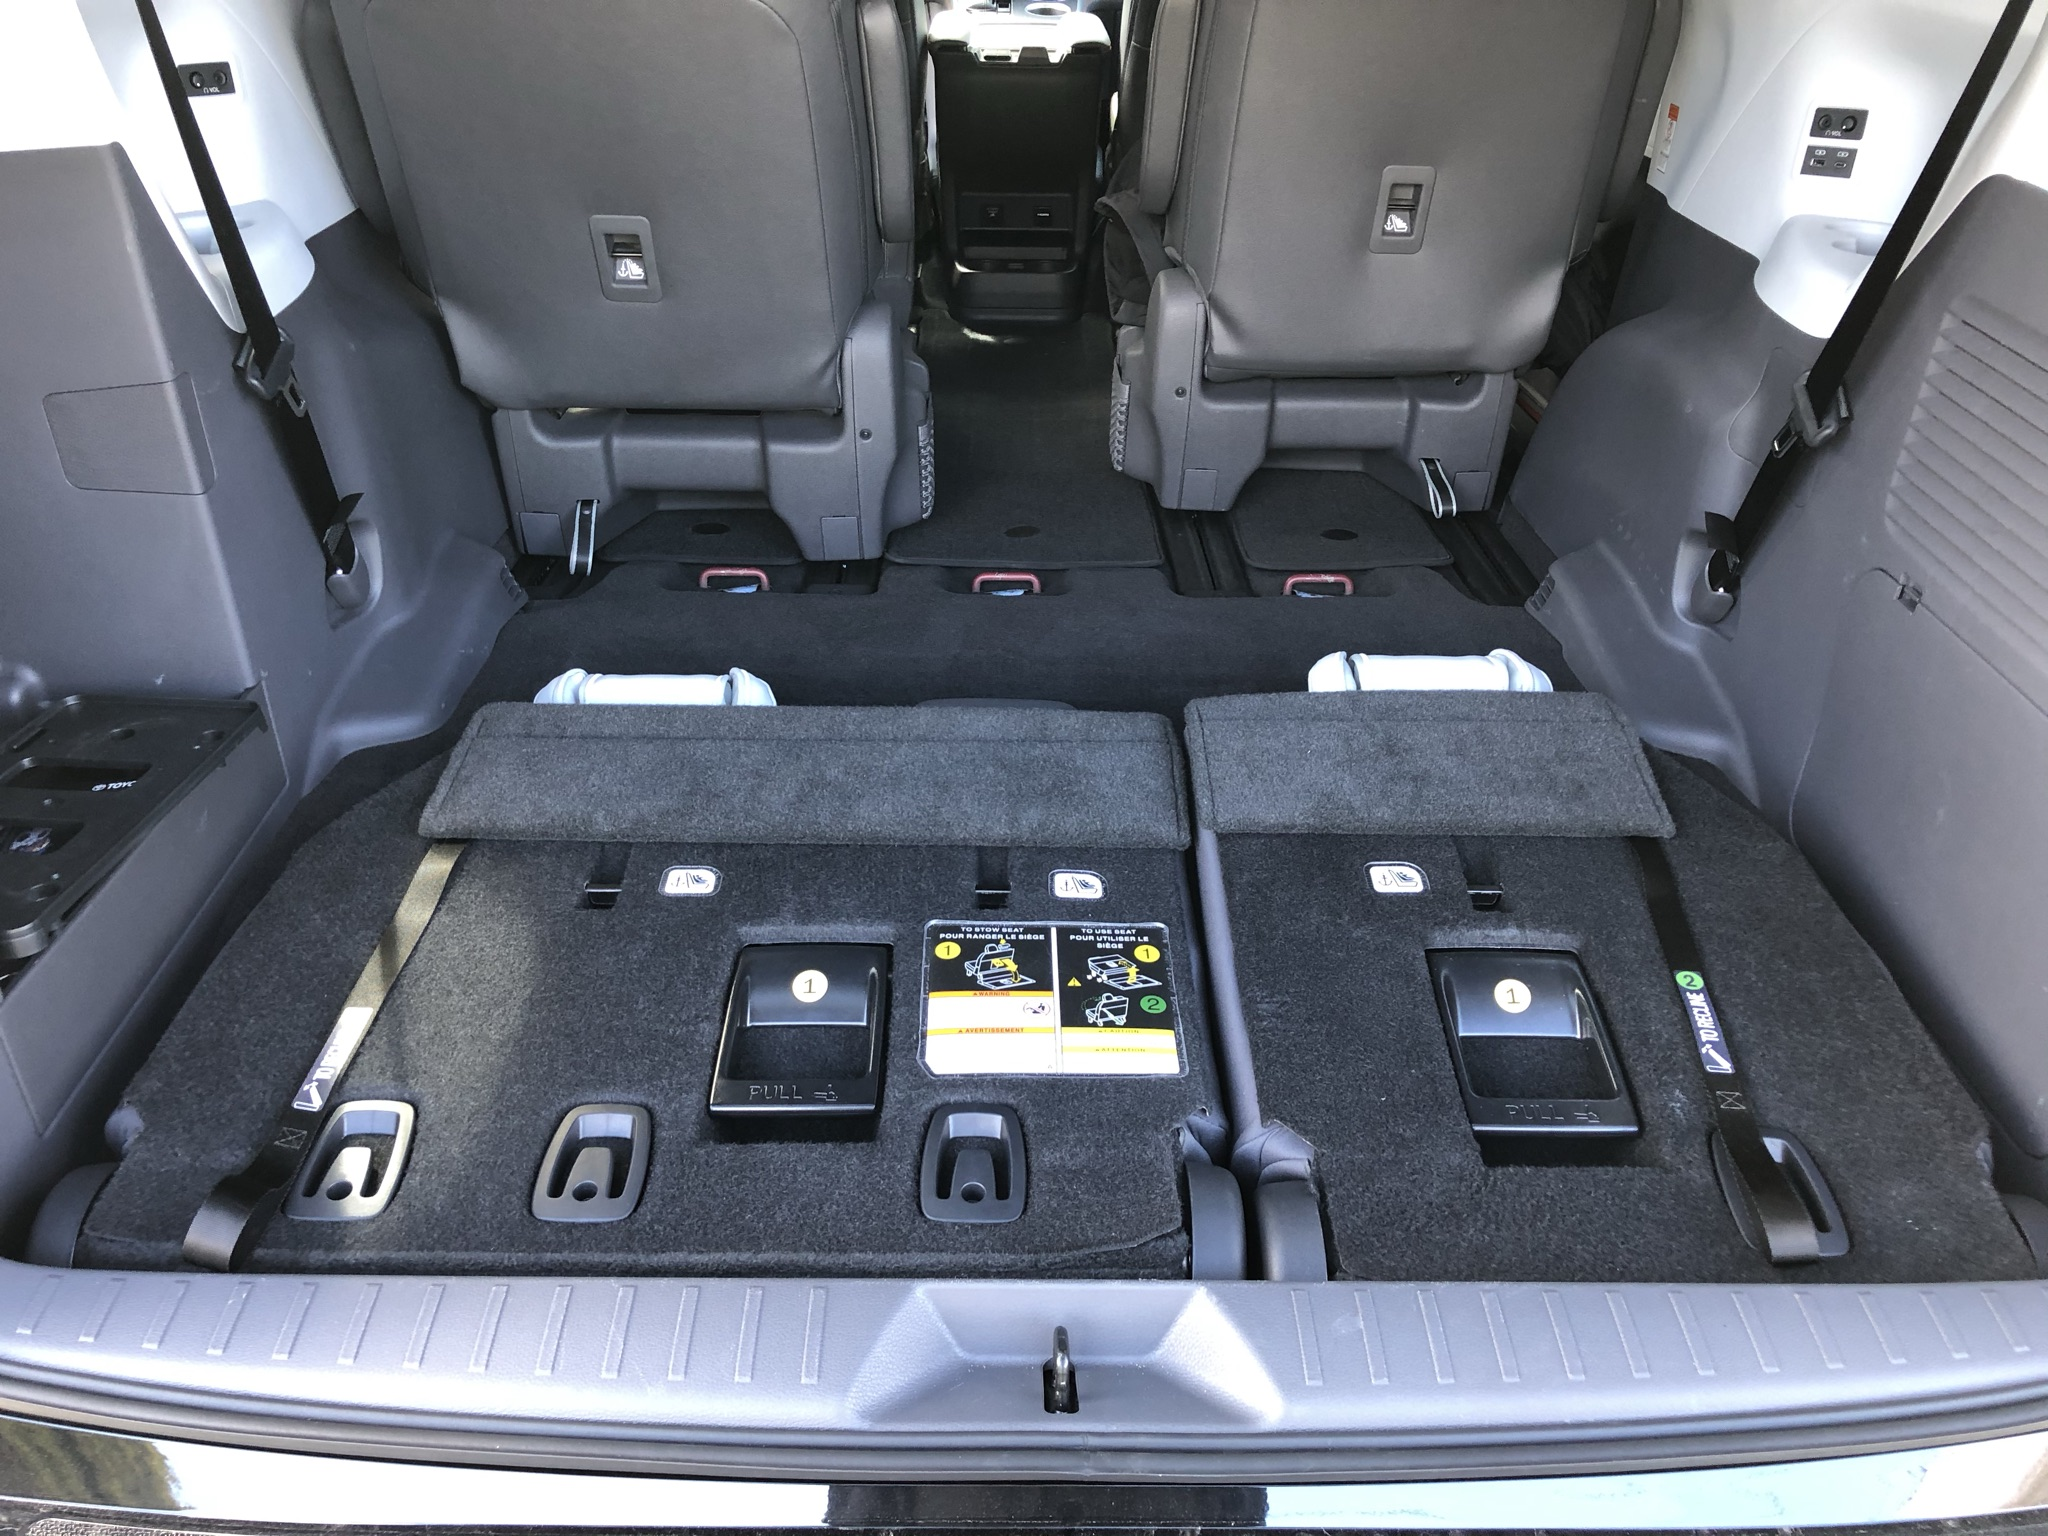 The Toyota Sienna's cargo area with folded third-row seats